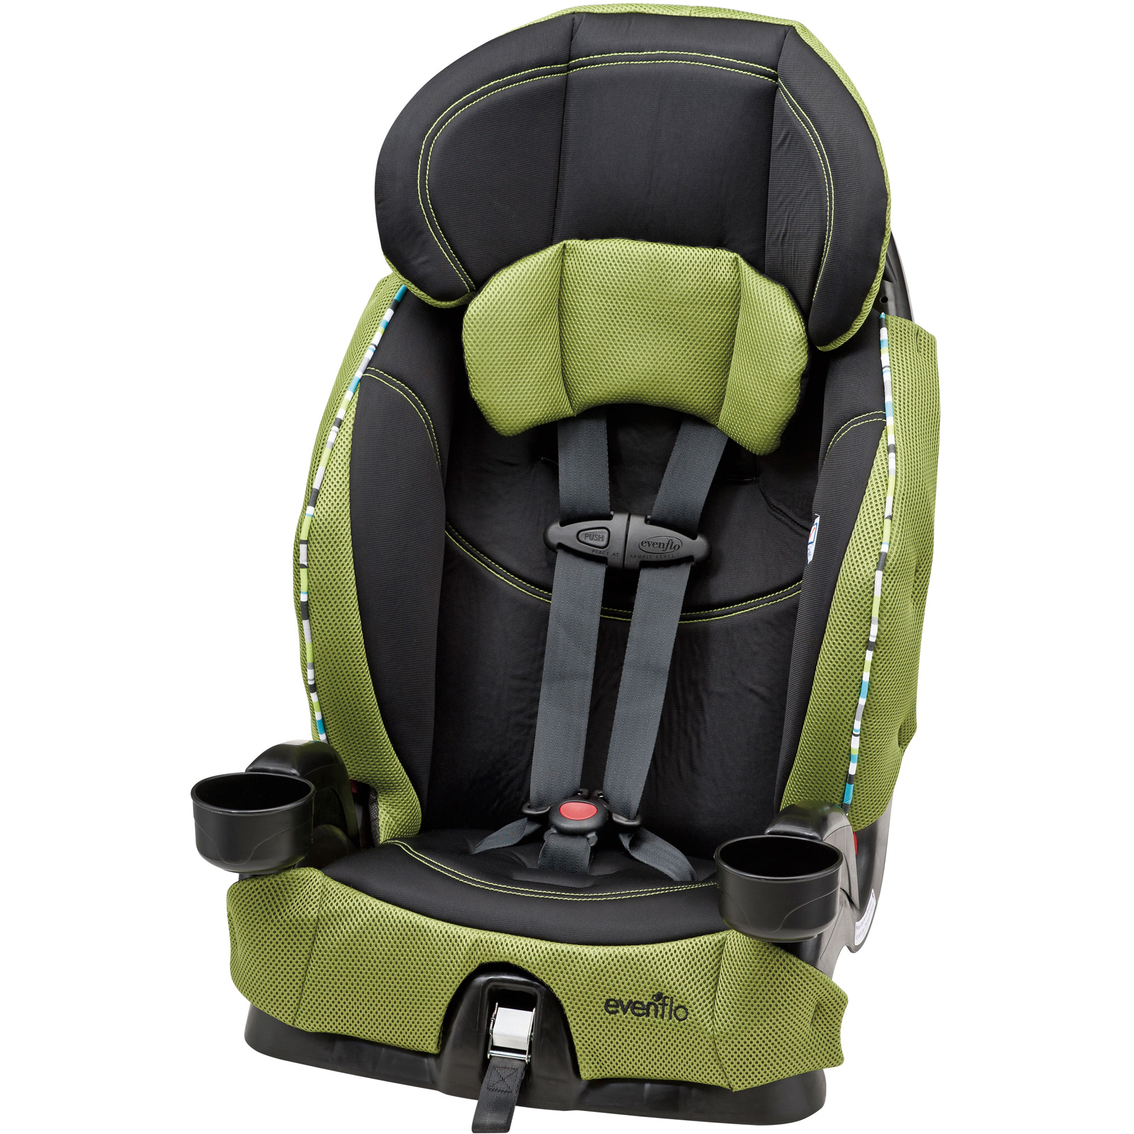 evenflo chase lx harnessed booster car seat car booster seats baby toys shop the exchange. Black Bedroom Furniture Sets. Home Design Ideas